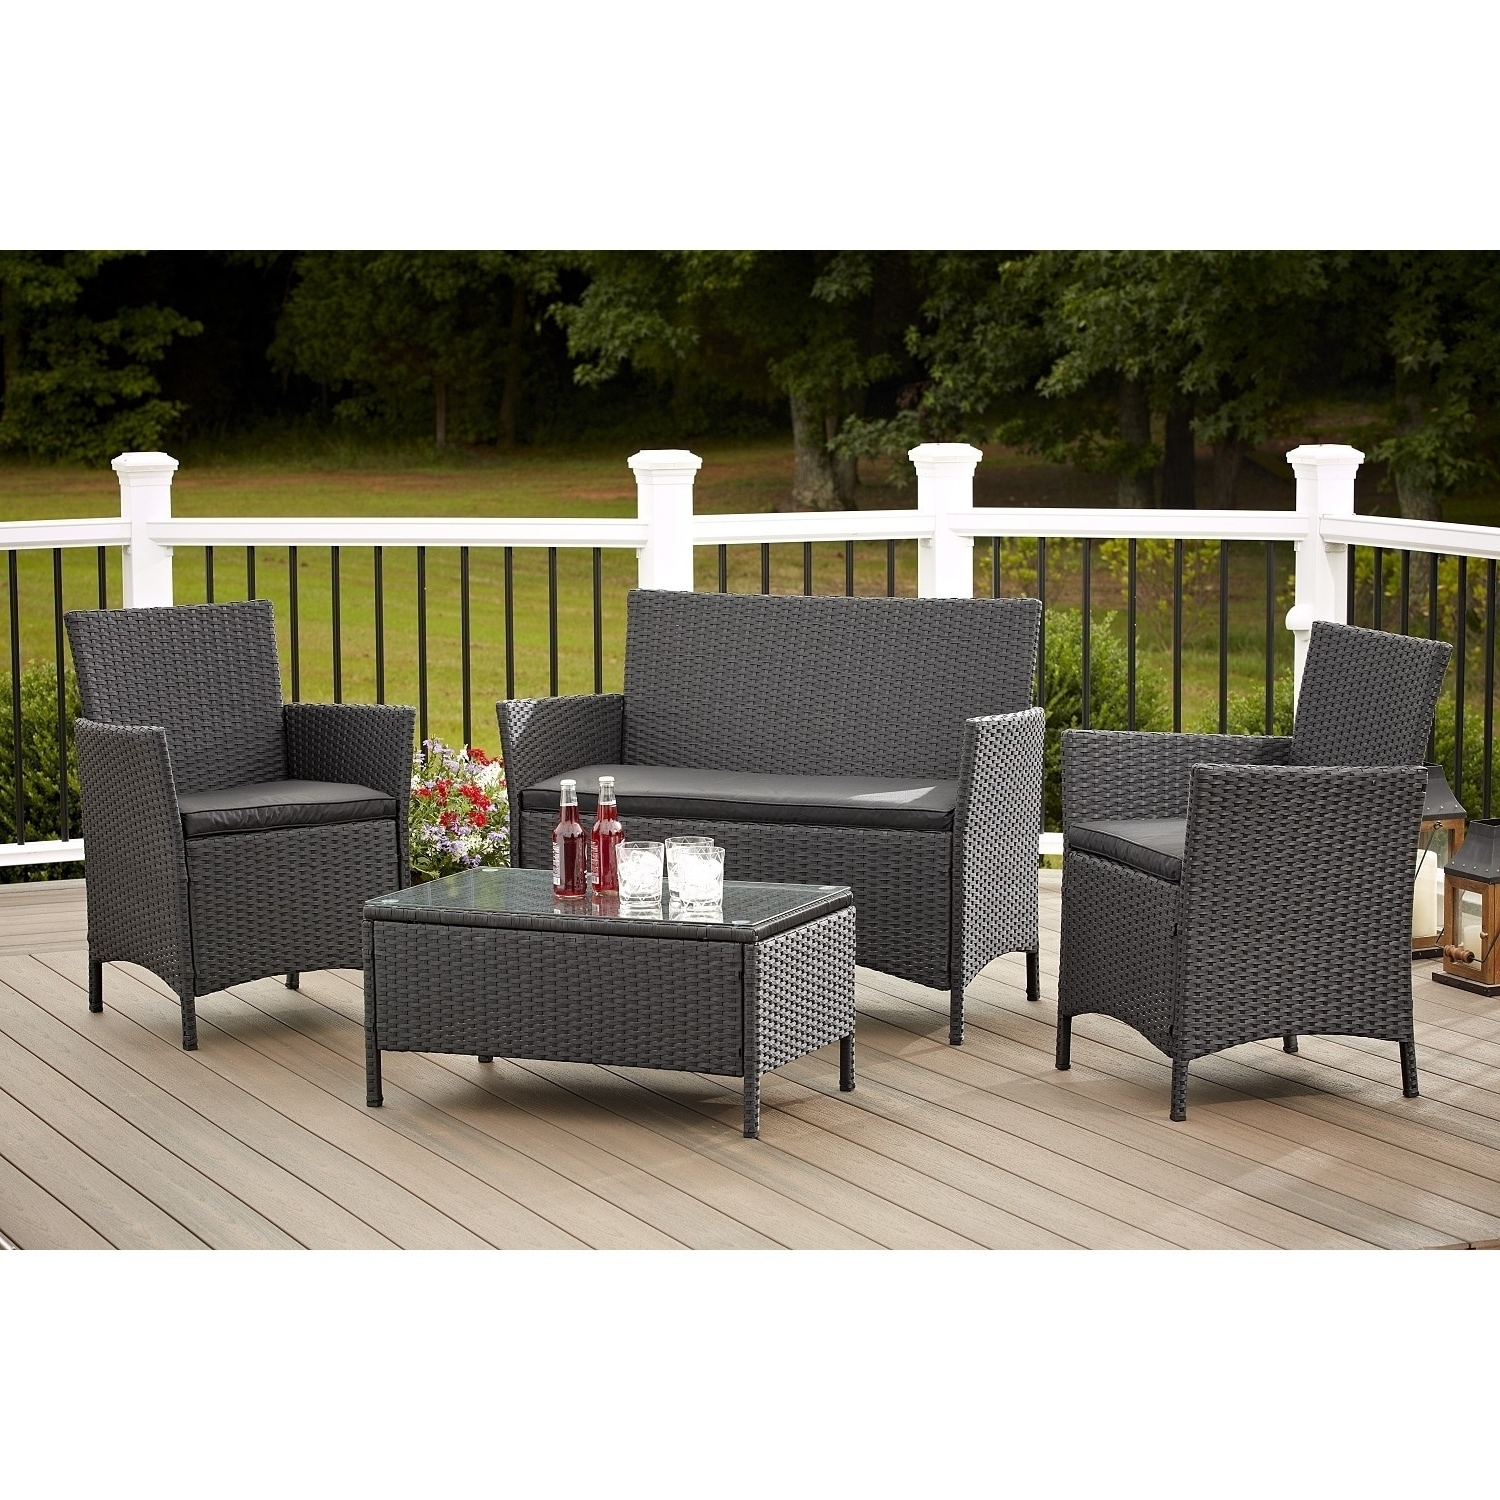 2018 Shop Avenue Greene 4 Piece Resin Wicker Deep Seating Patio Intended For Wicker 4Pc Patio Conversation Sets With Navy Cushions (View 1 of 20)